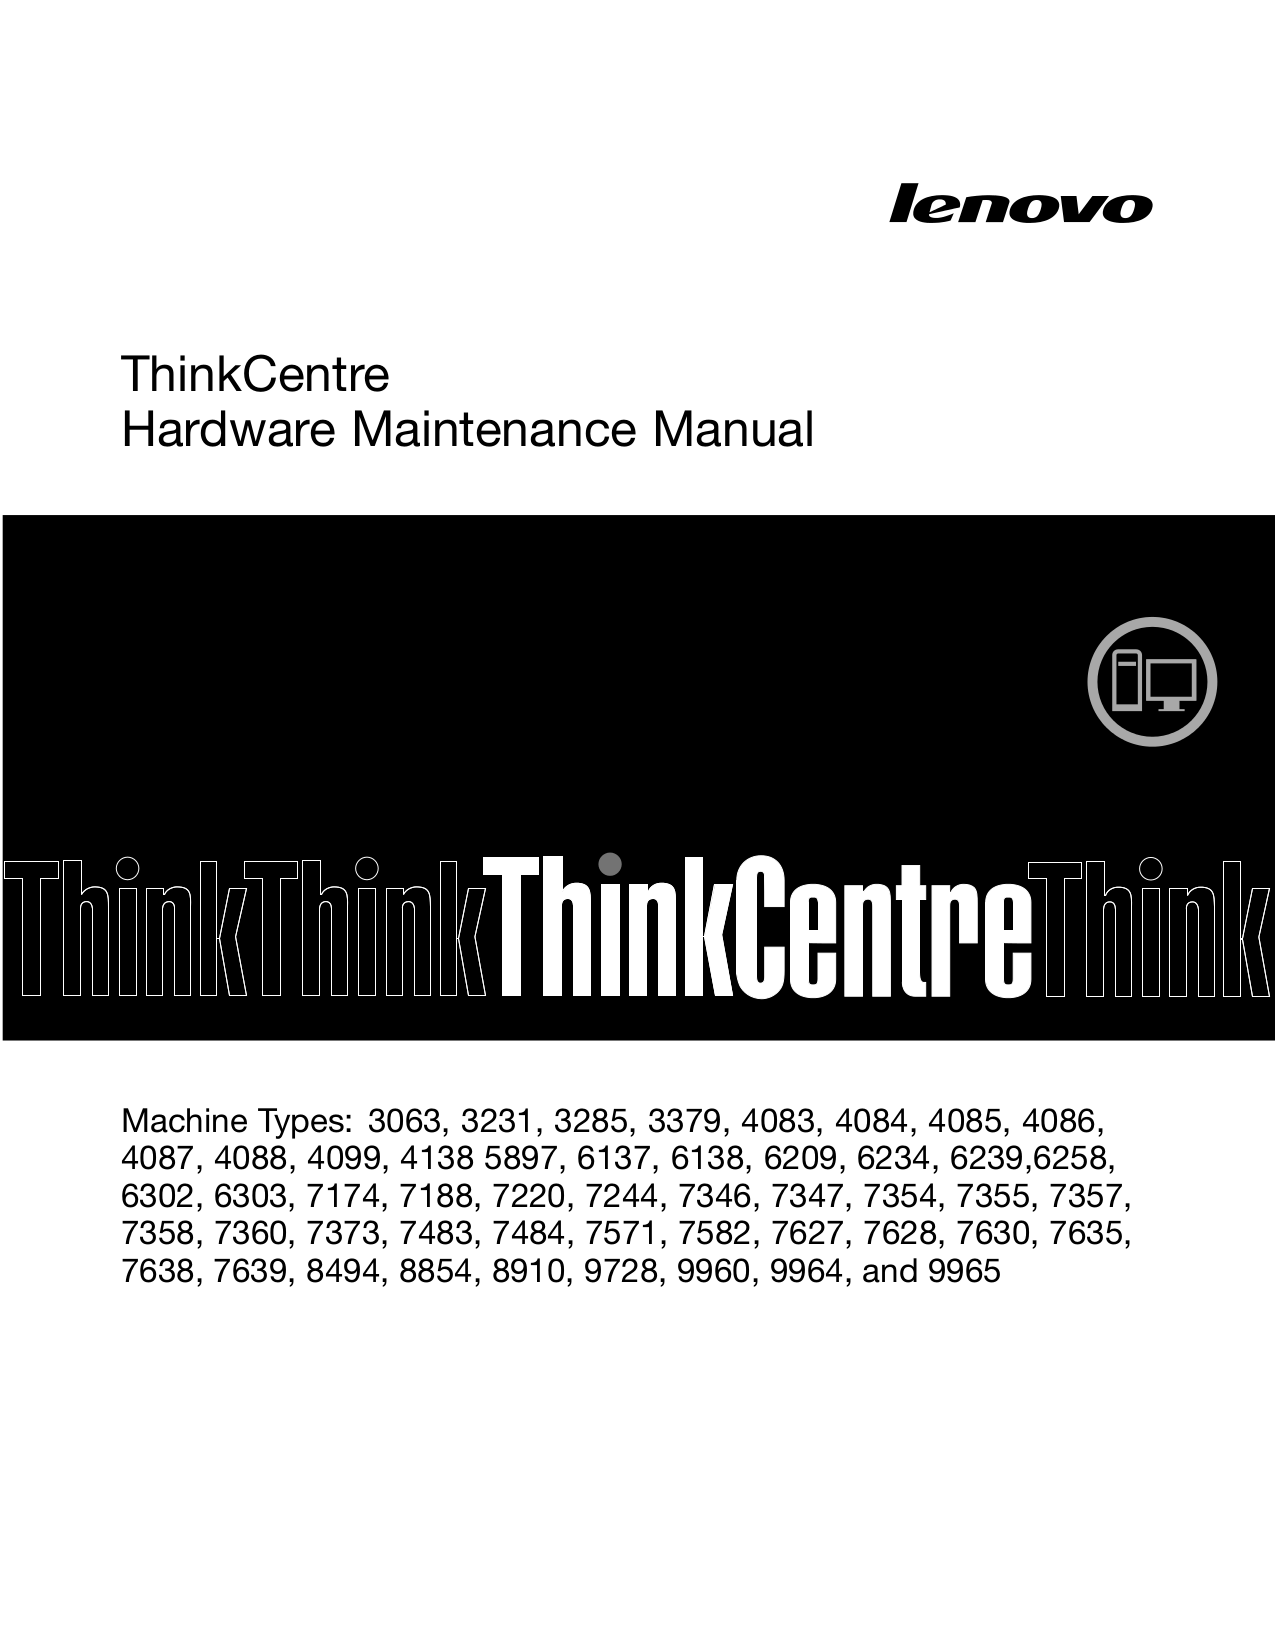 pdf for Lenovo Desktop ThinkCentre M58 6258 manual